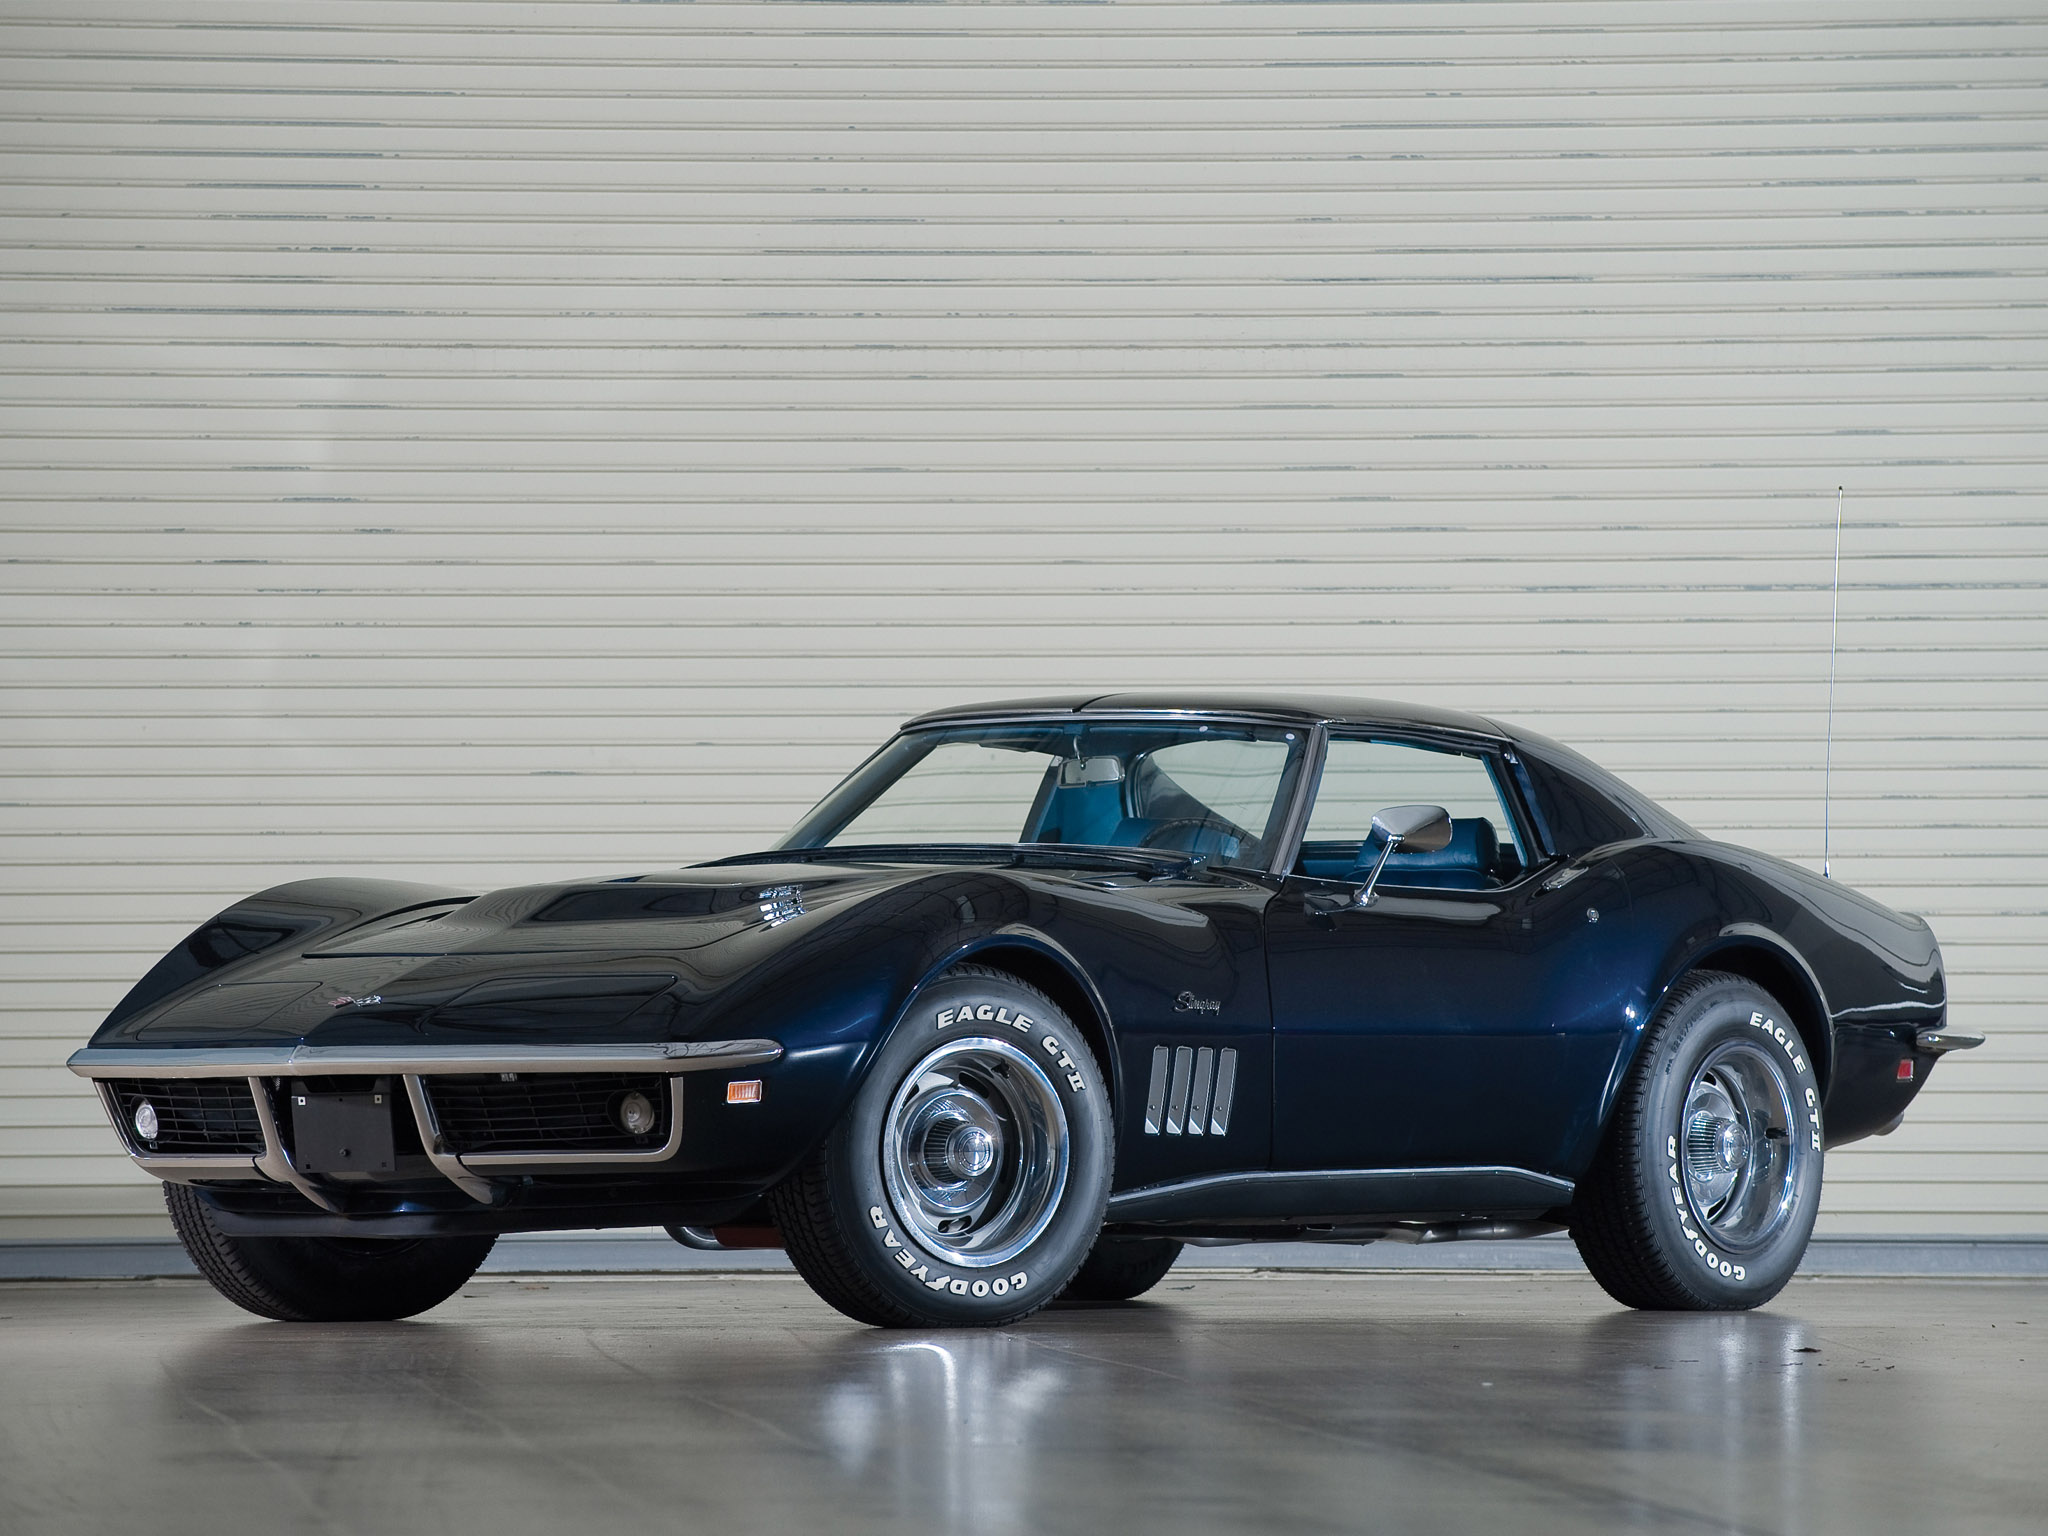 Rare Corvette Collection Unearthed in NYC Underground Garage